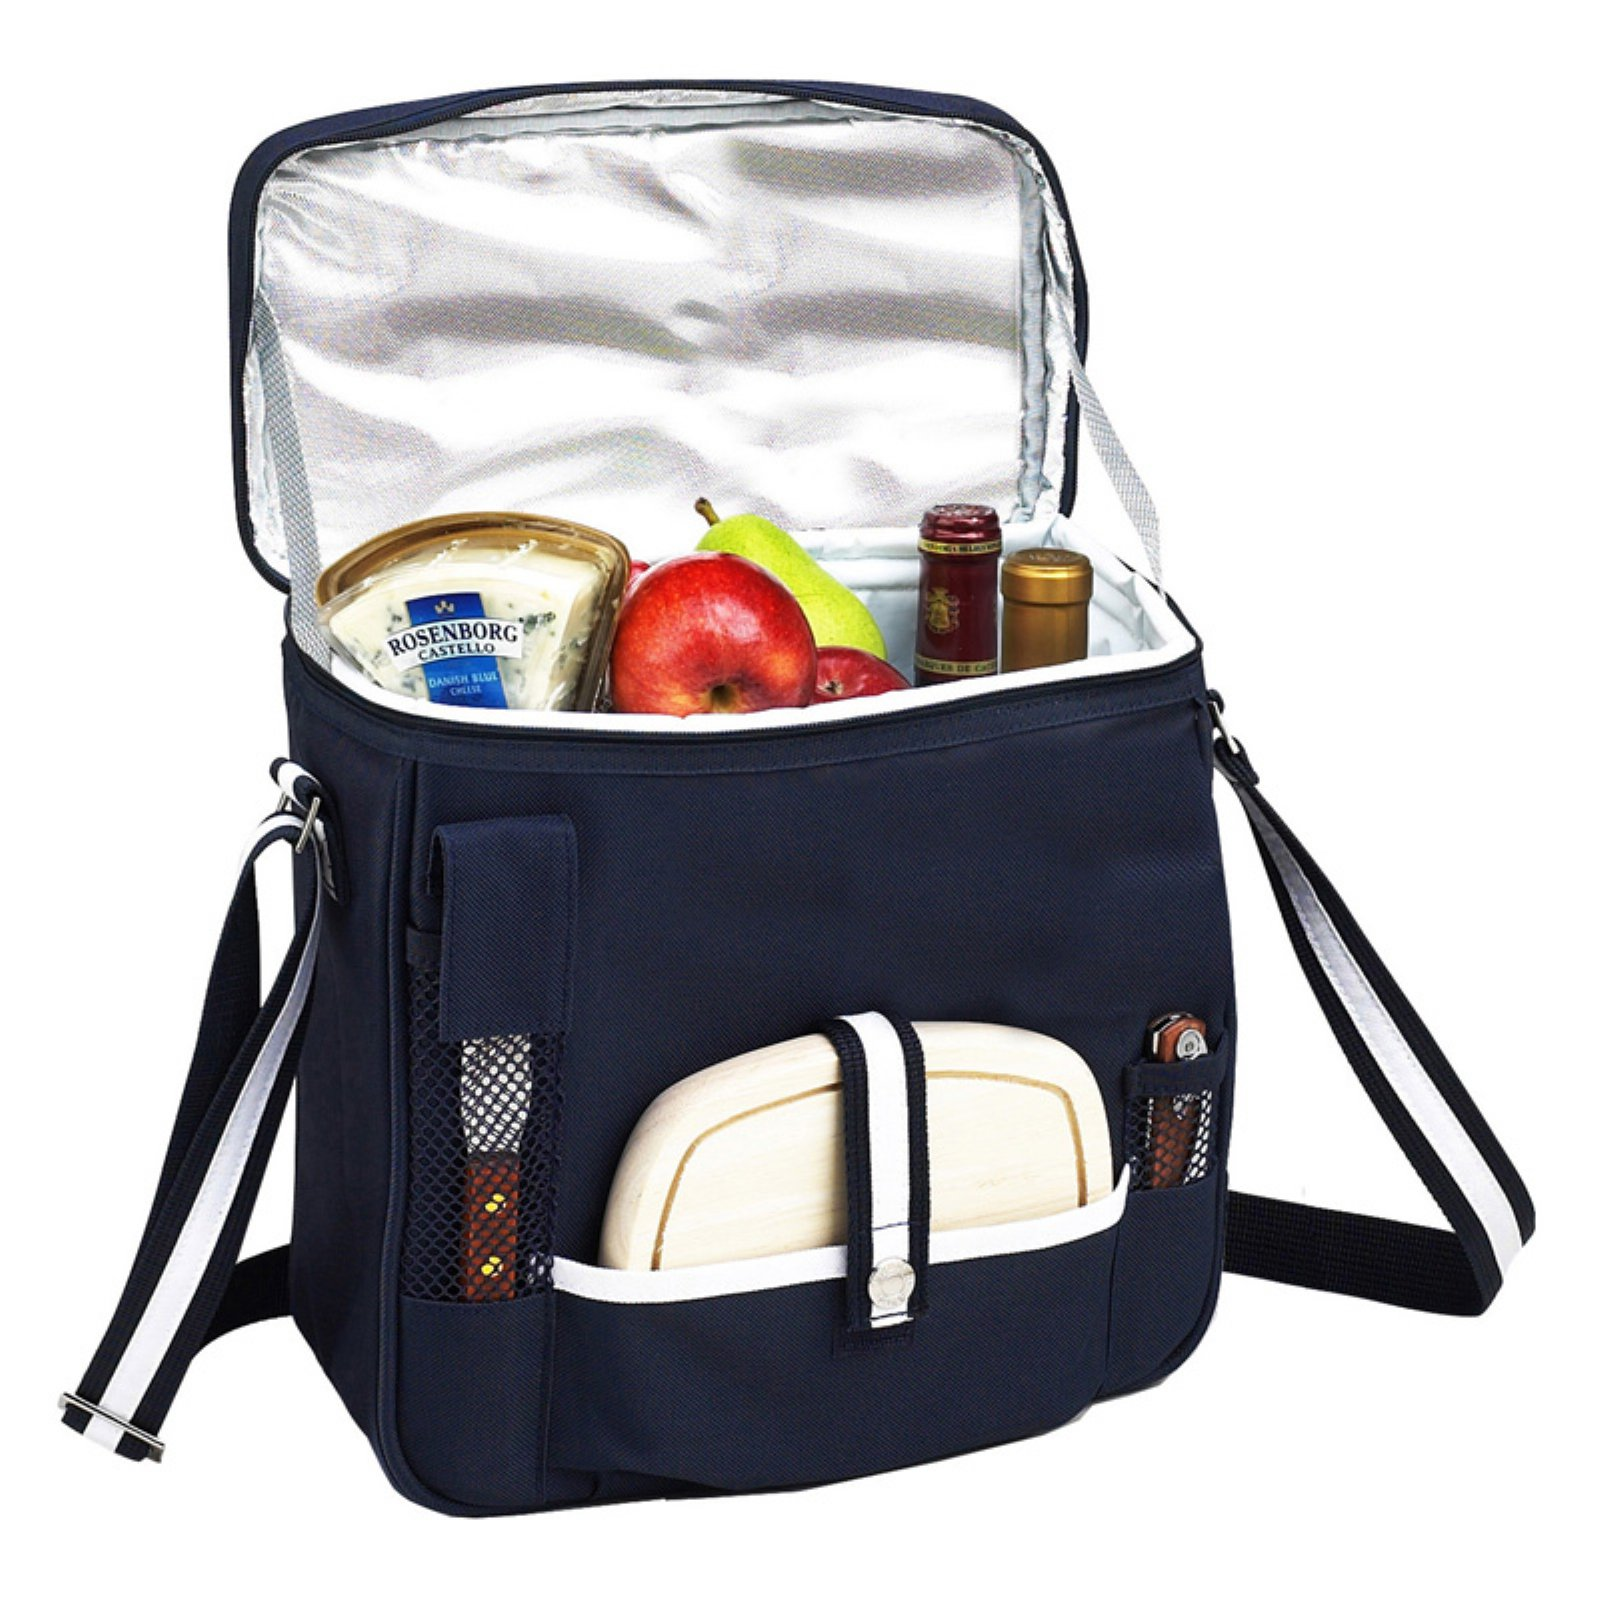 Picnic at Ascot Wine and Cheese Cooler - Navy and White